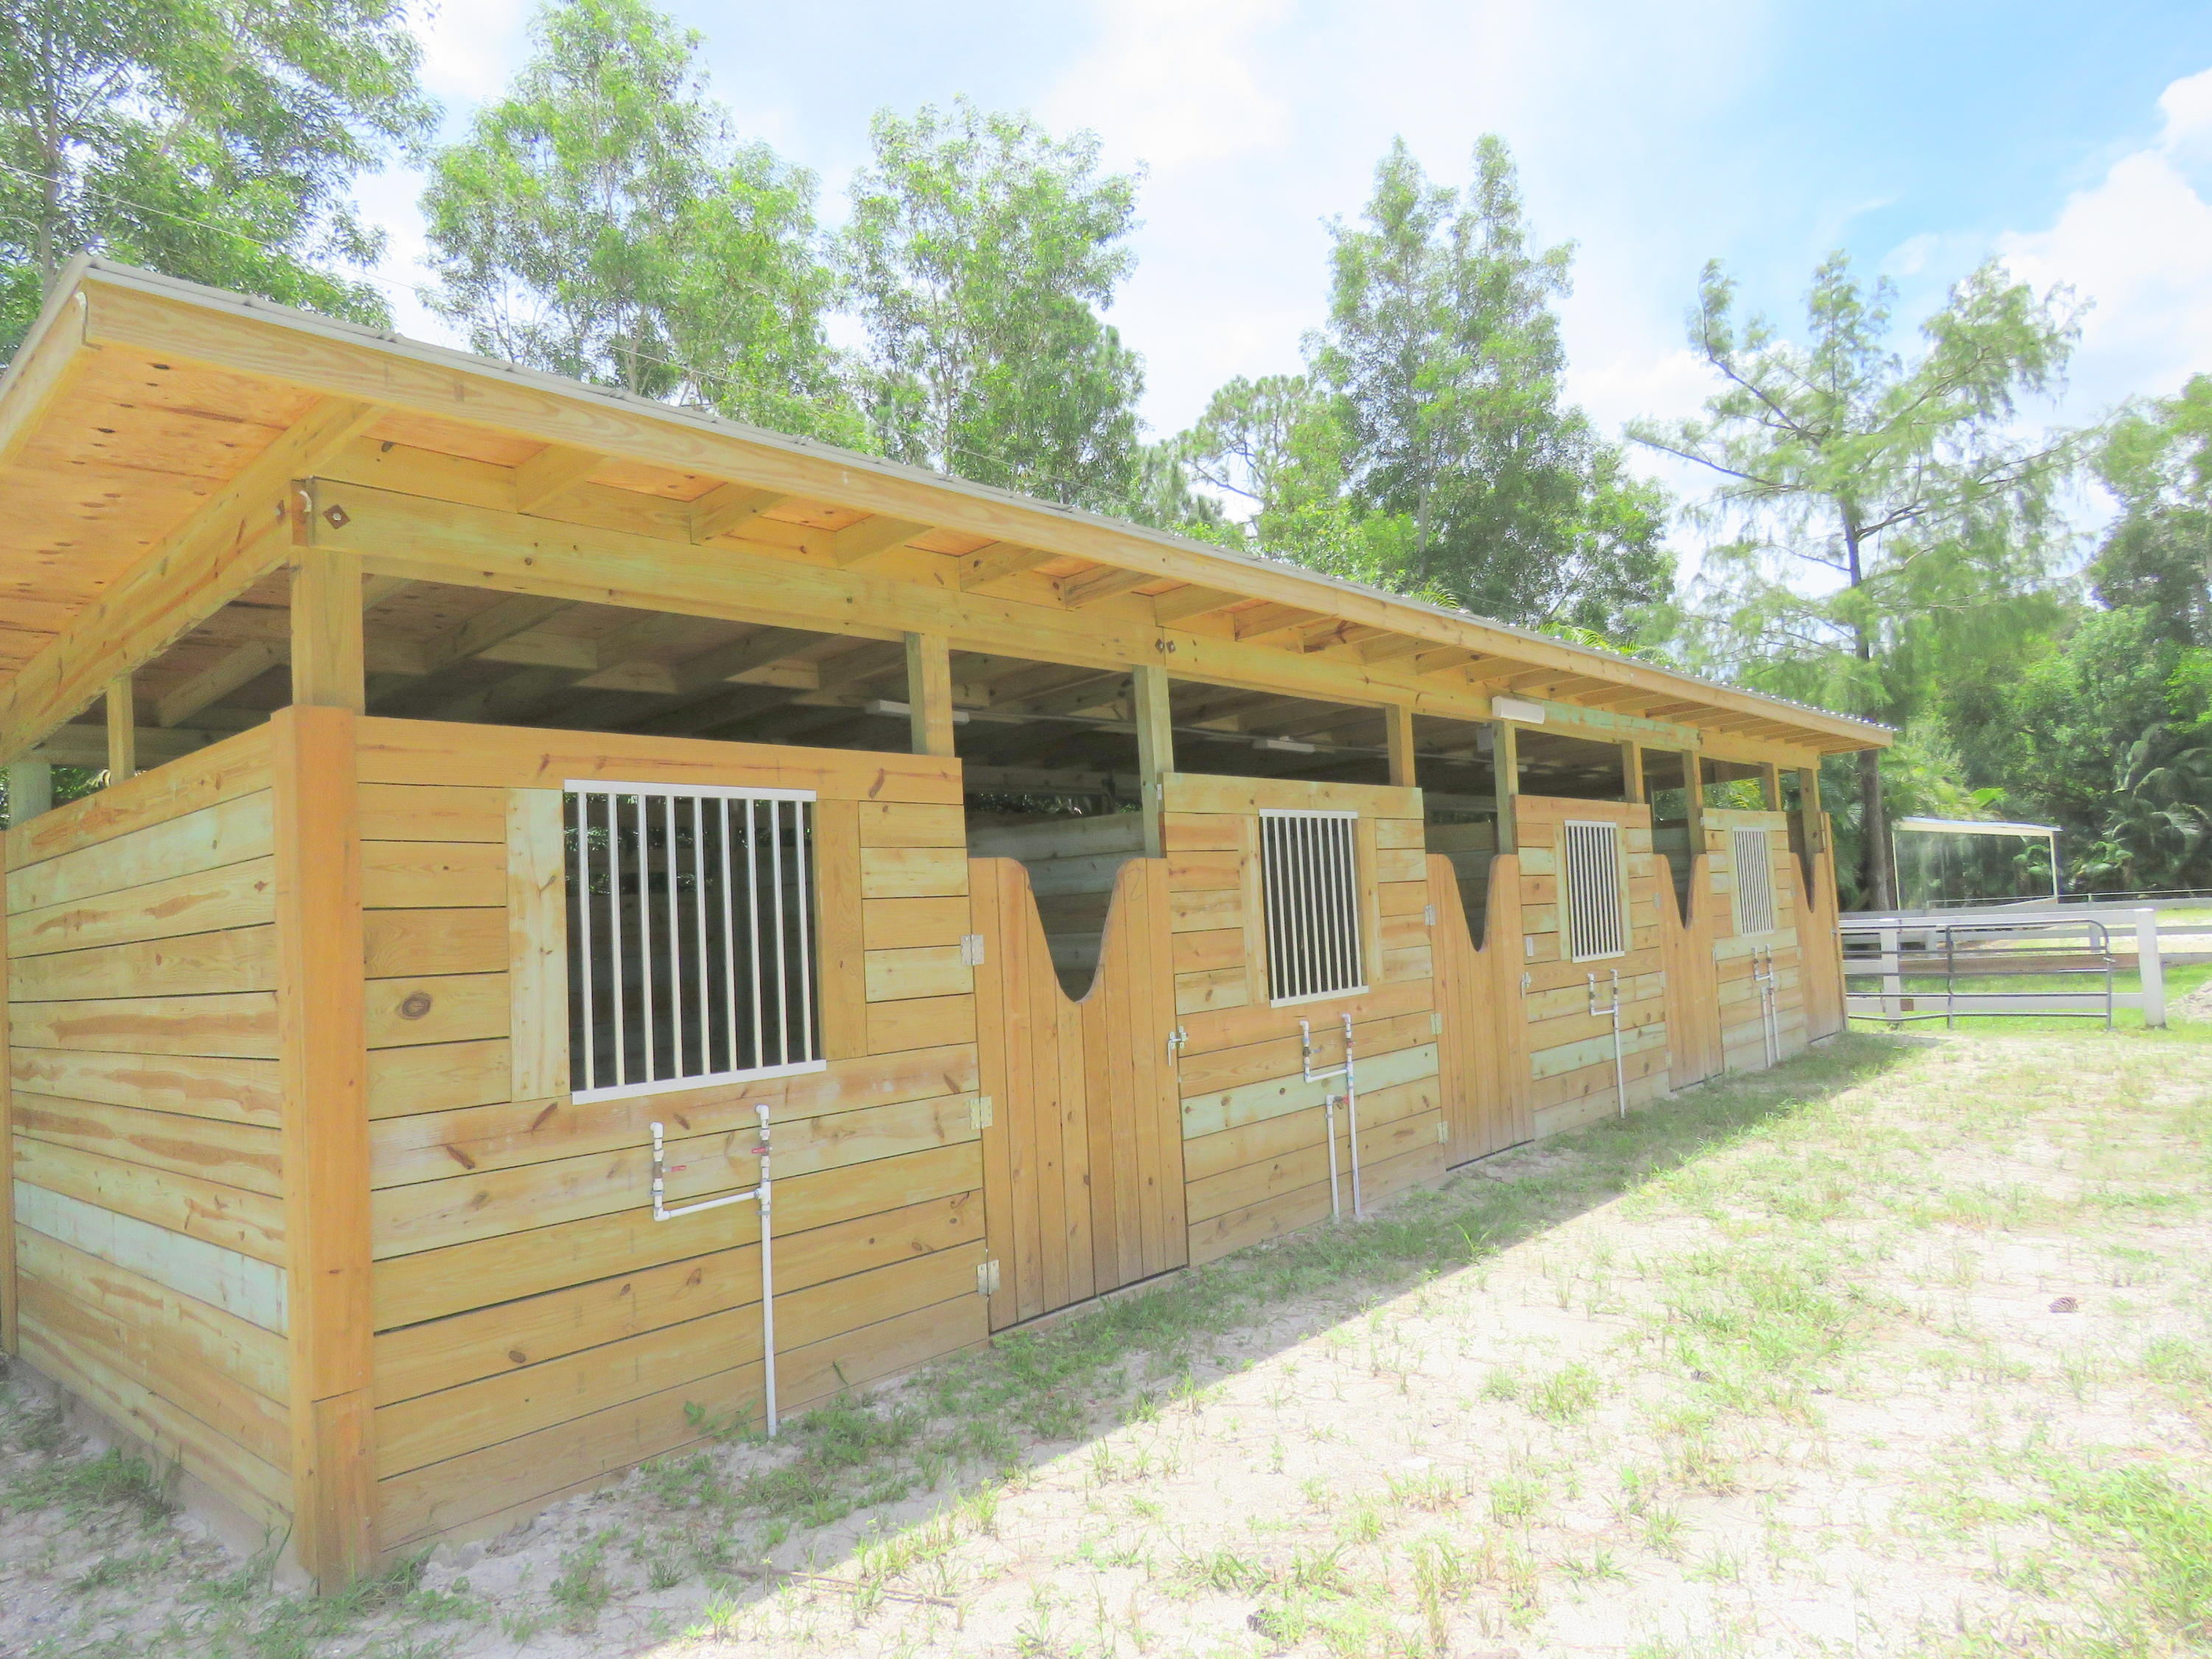 BRAND NEW STALLS IN SEPARATE BARN